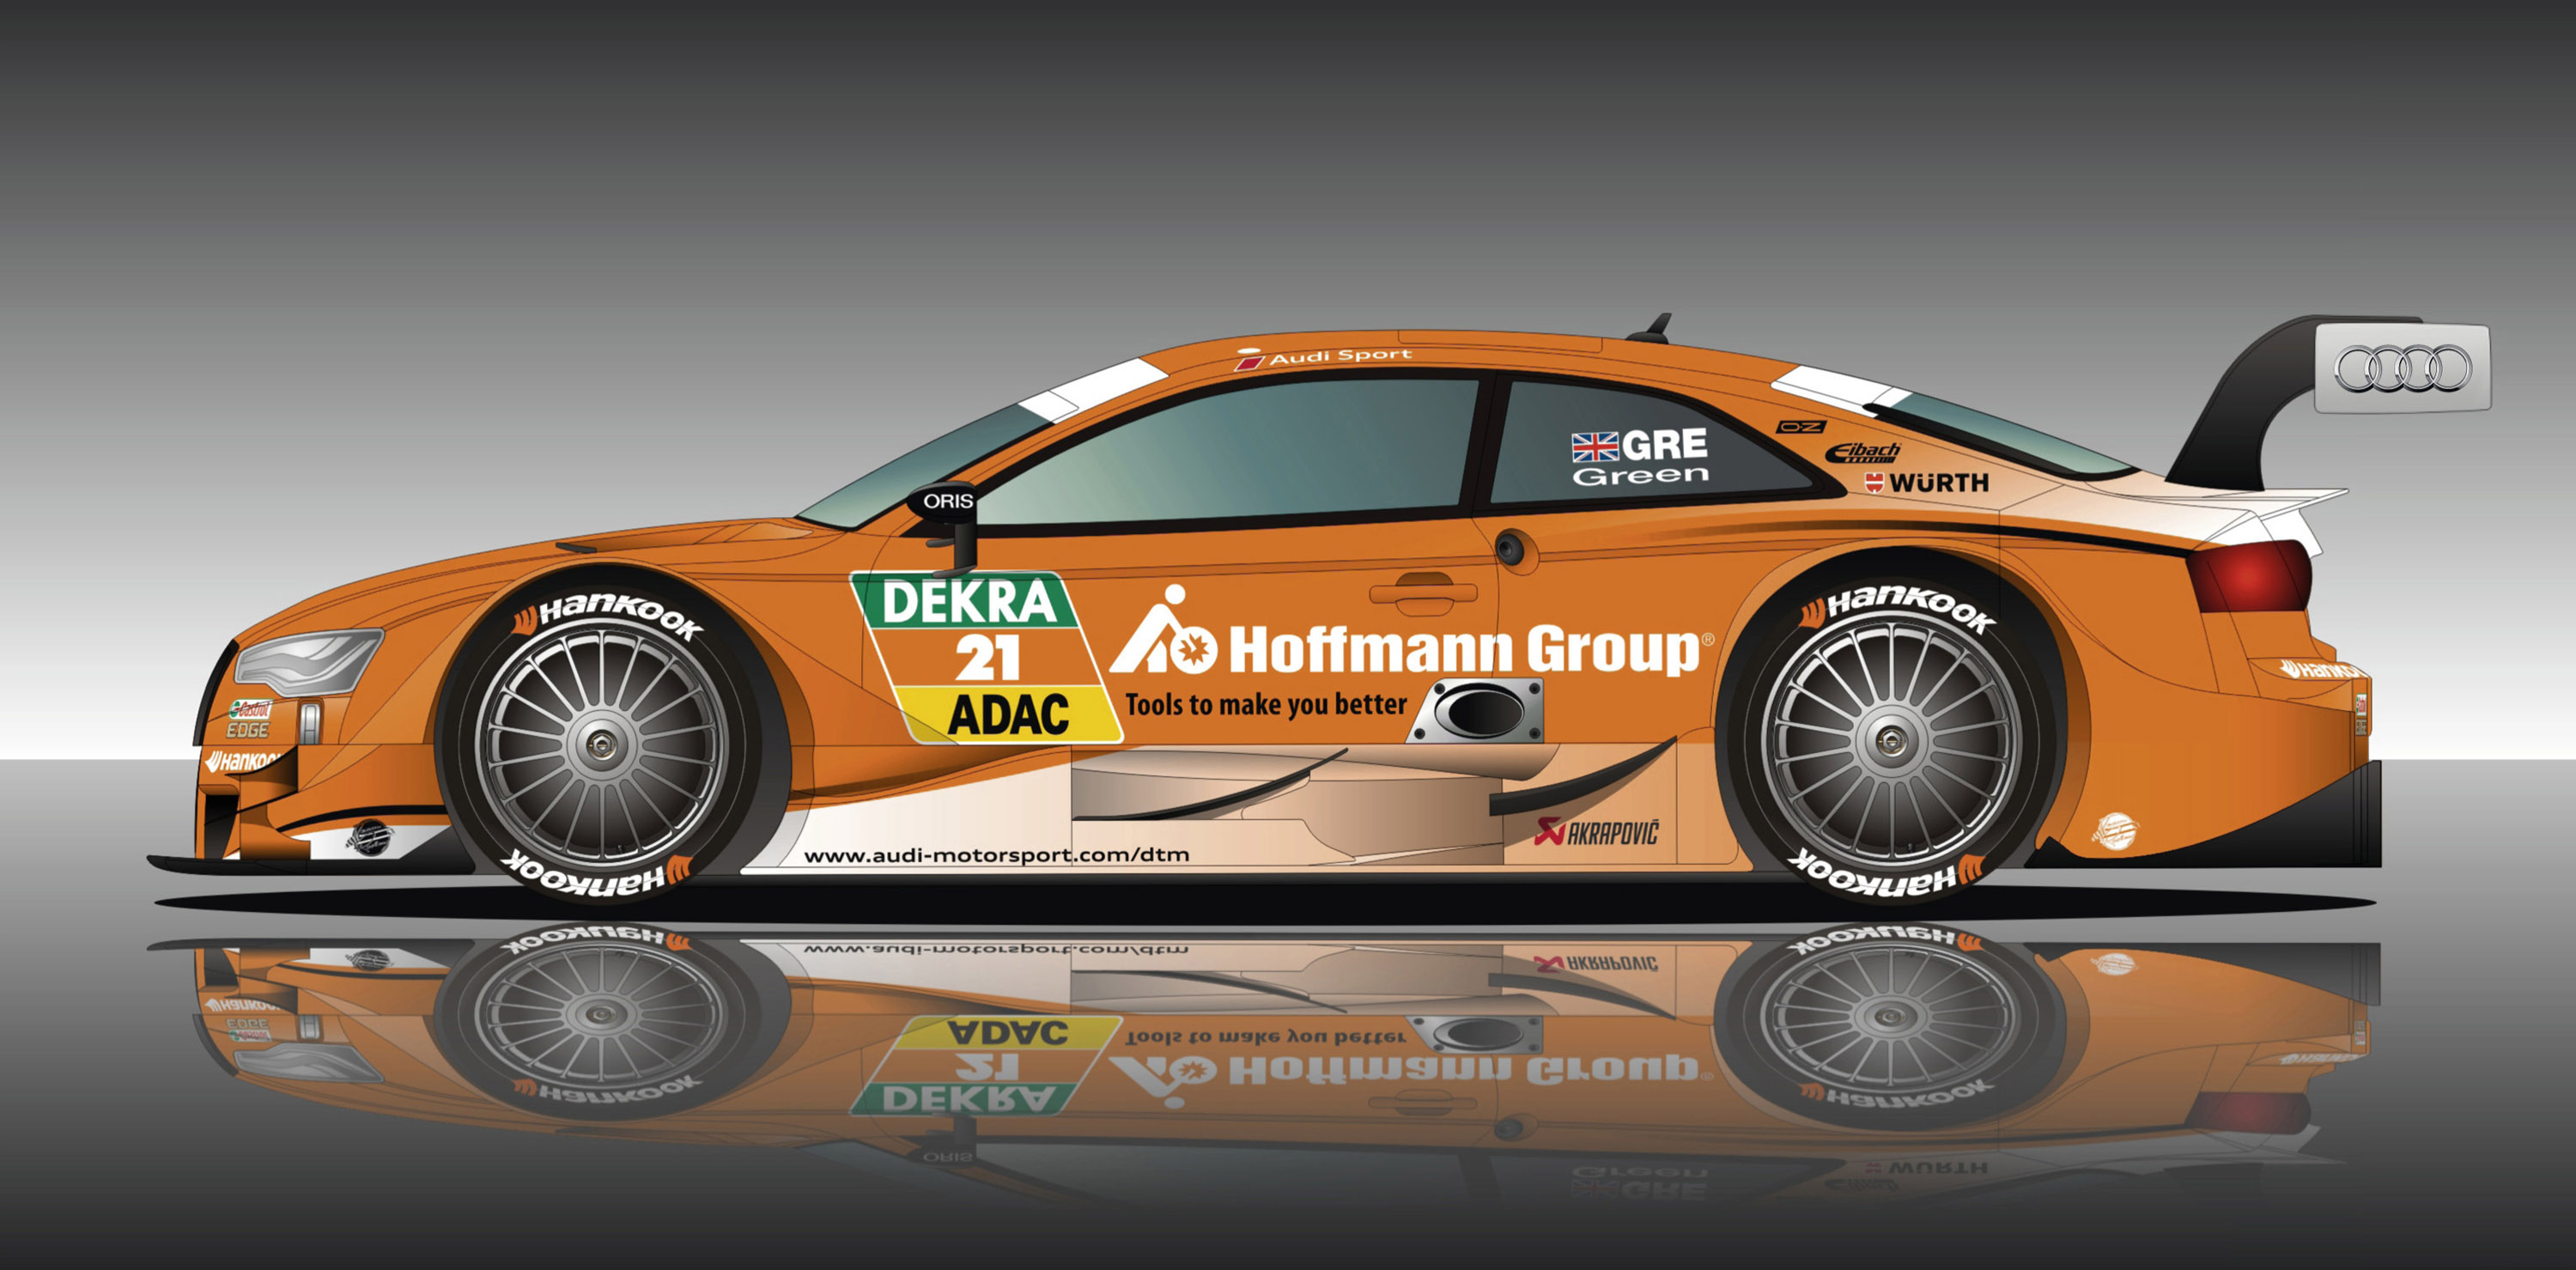 Hoffmann Group Partners With Audi For New Rs5 Dtm Livery